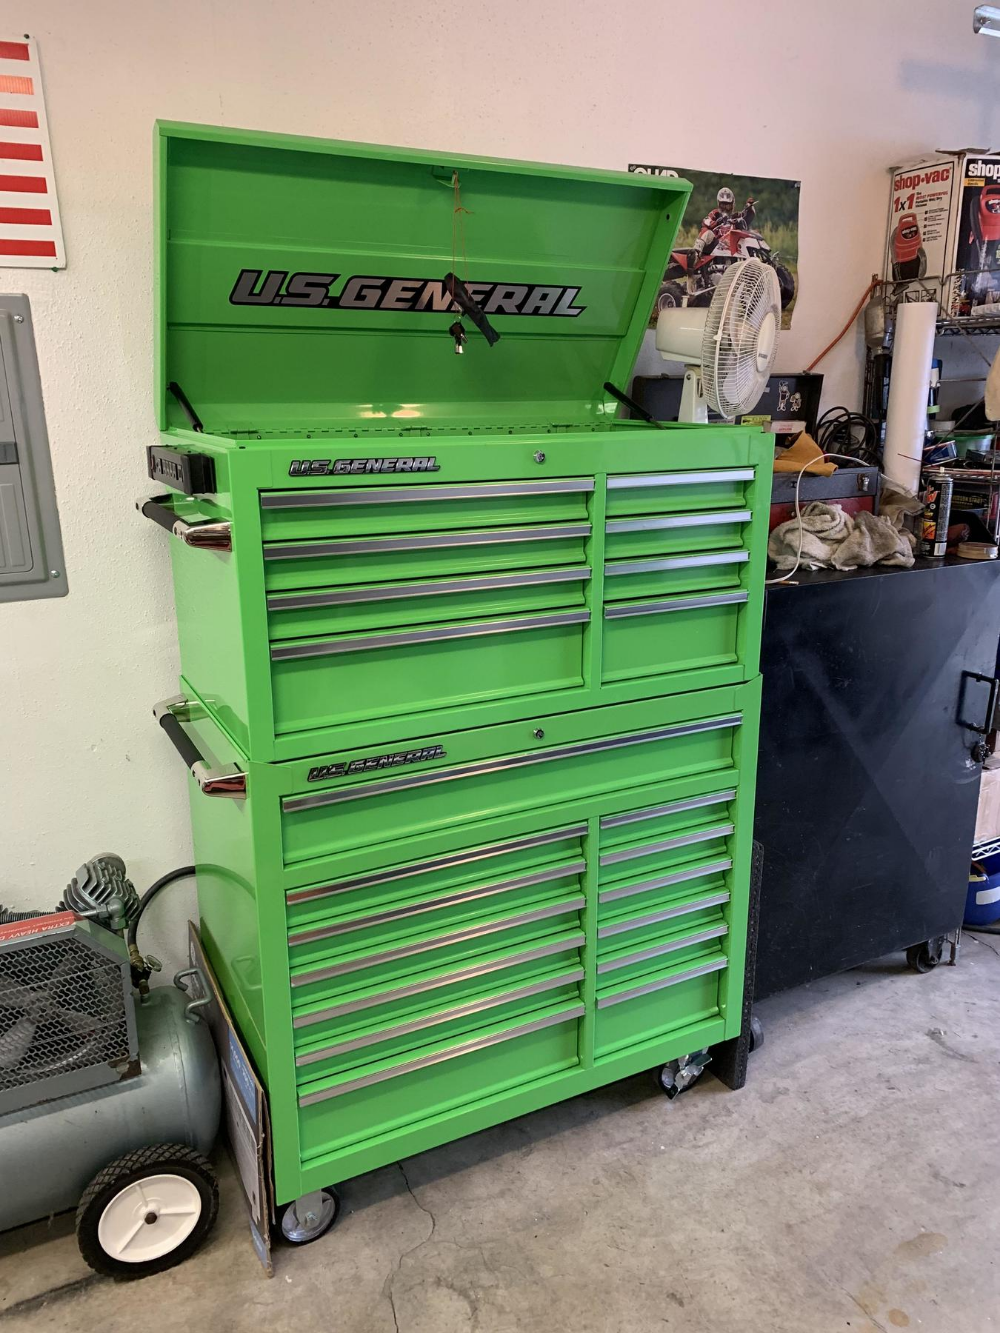 44 In X 22 In Double Bank Green Roller Cabinet With Images Tool Box Organization Roller Tool Storage